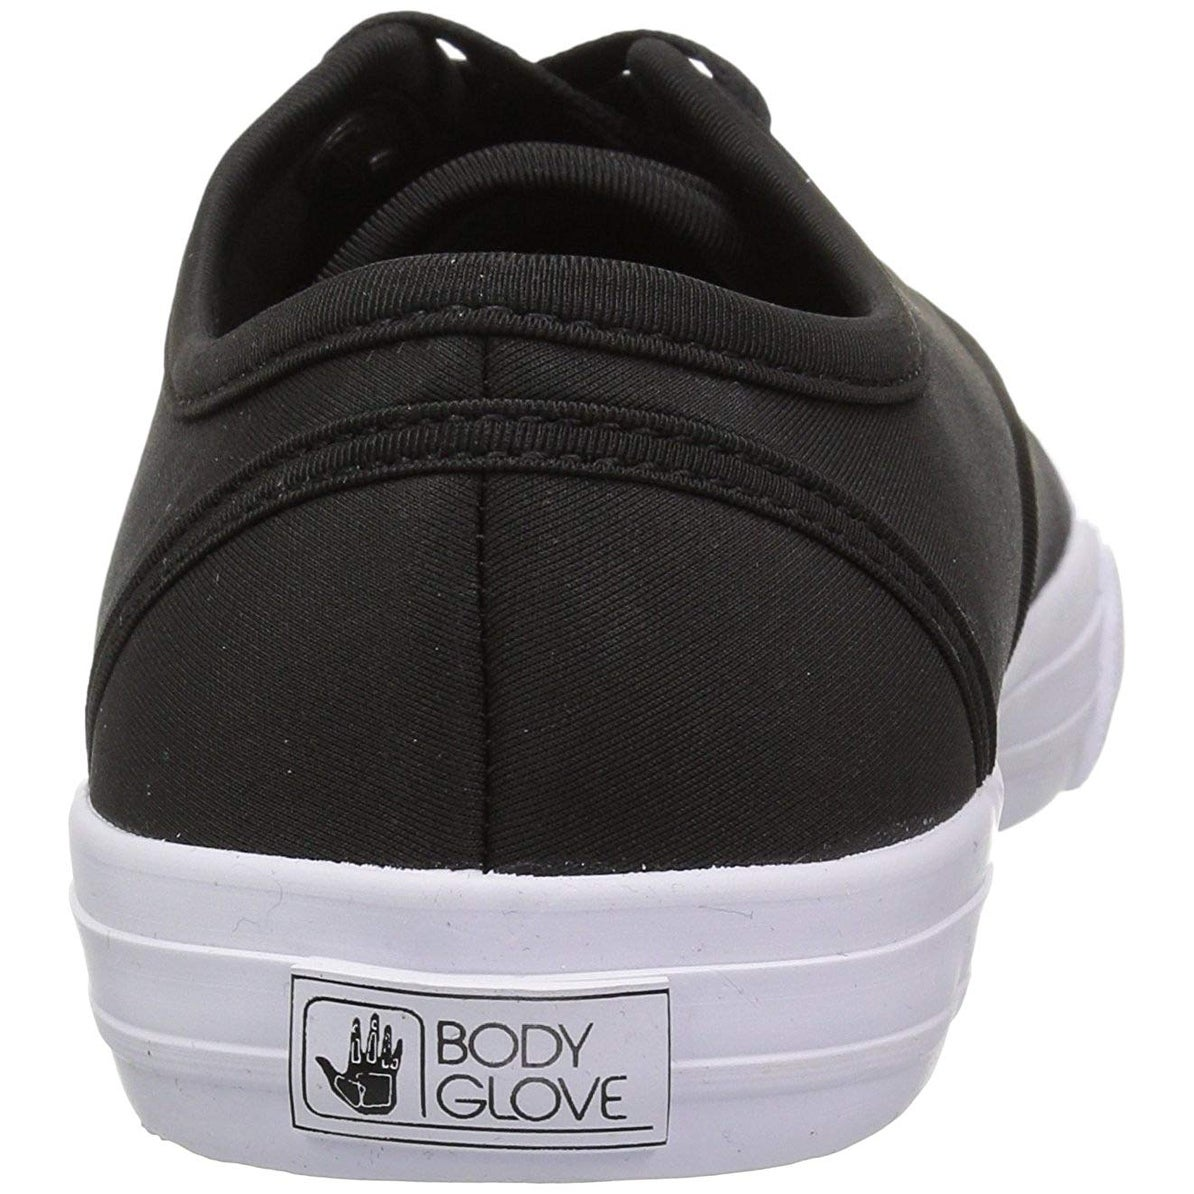 511a75c9096d Shop Body Glove Women s Fiji Sneaker - Free Shipping On Orders Over  45 -  Overstock - 27099205